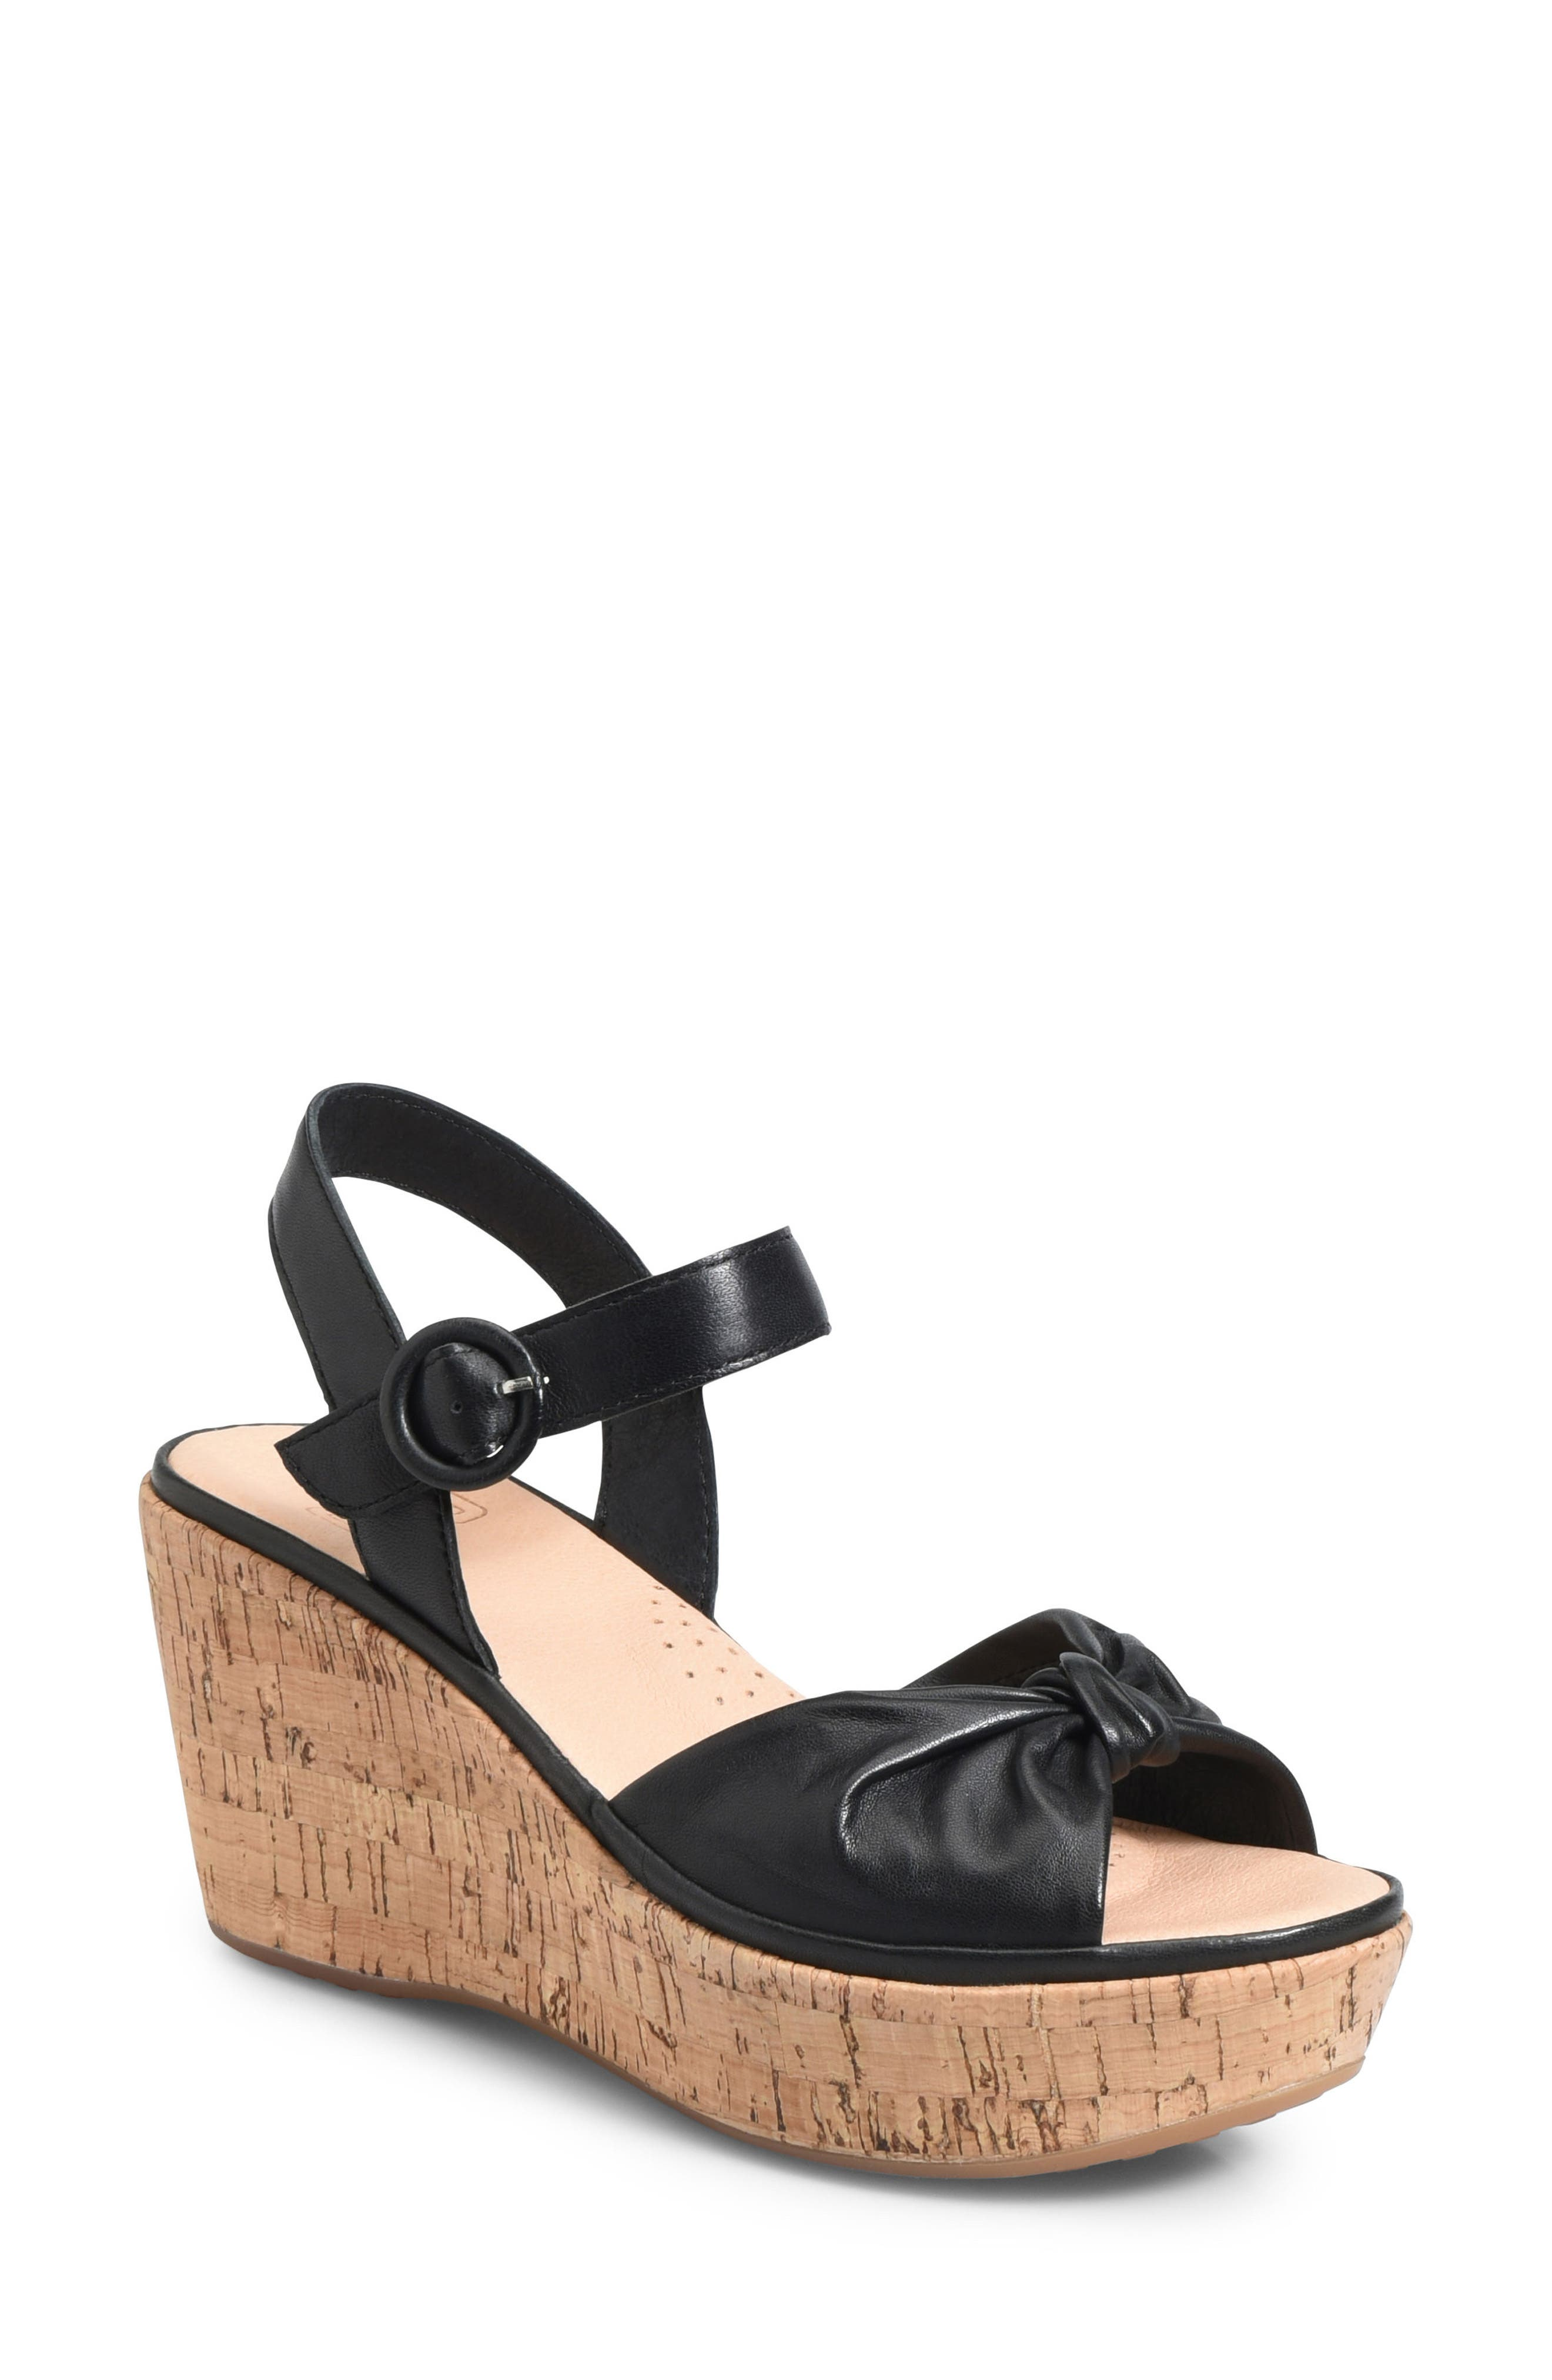 Heavenly Platform Wedge Sandal,                             Main thumbnail 1, color,                             BLACK LEATHER